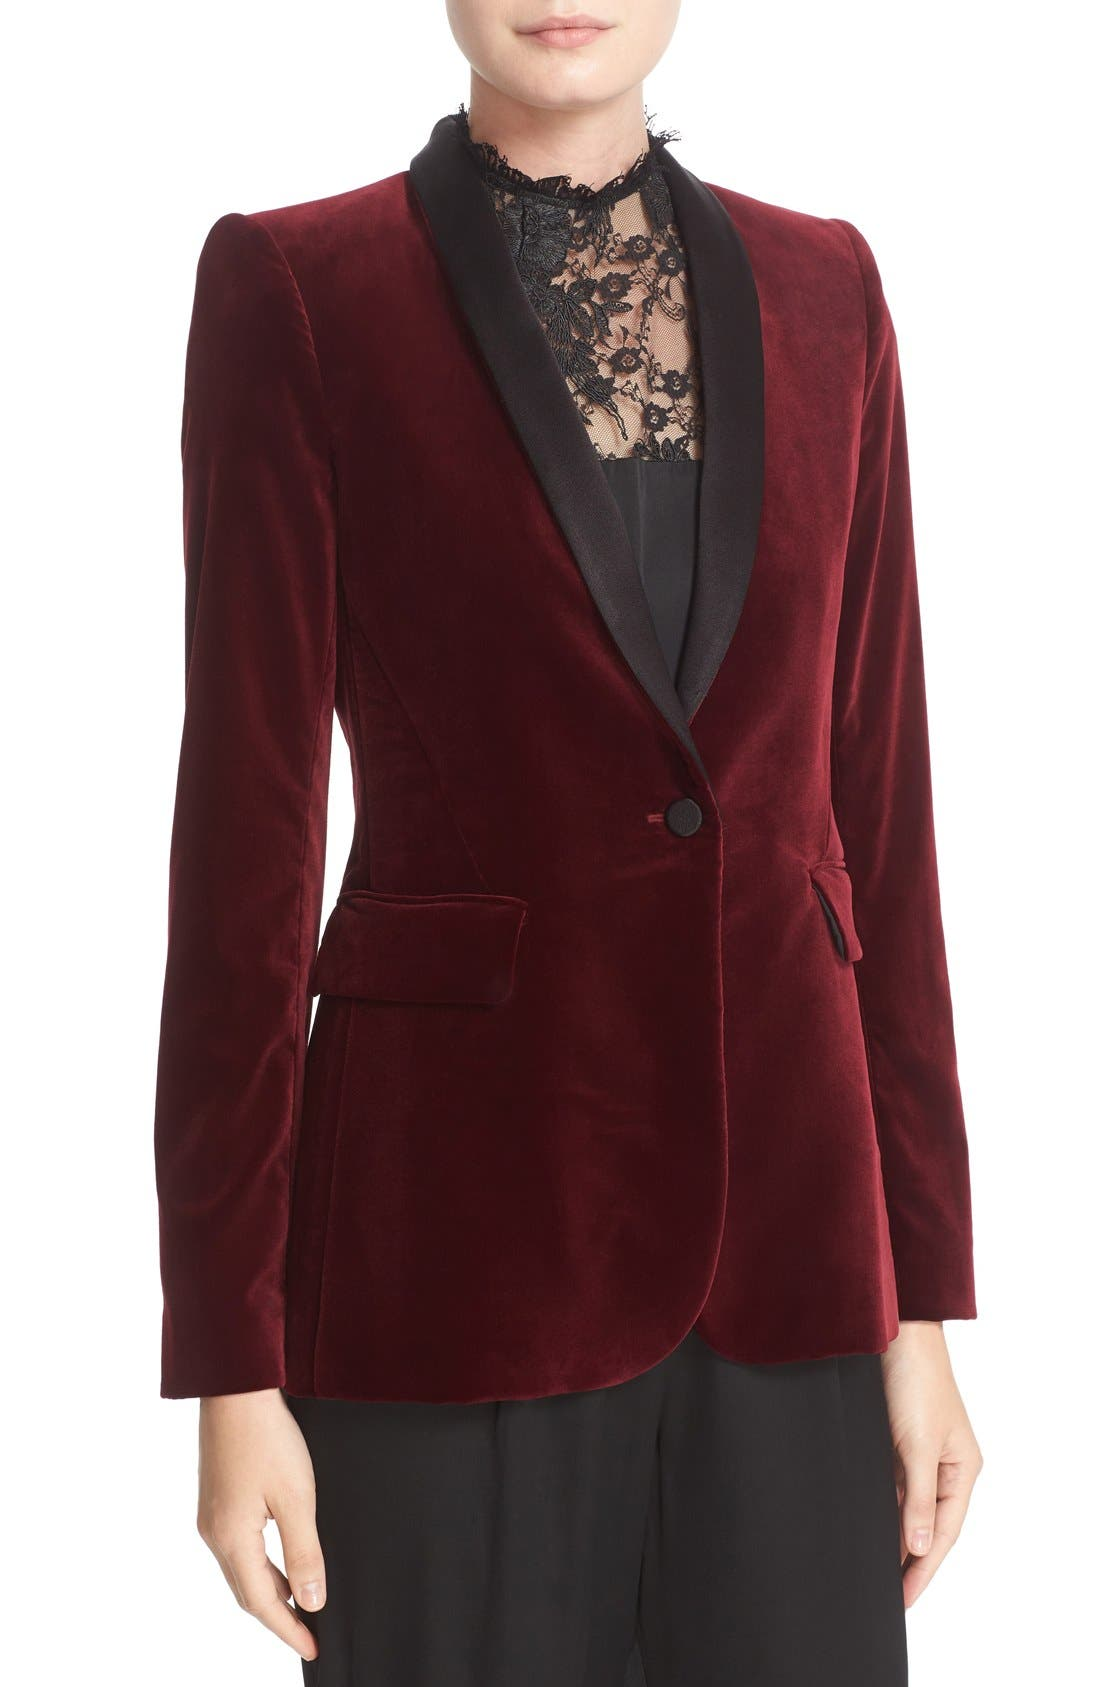 'Macey' Satin Lapel Velvet One-Button Blazer,                             Alternate thumbnail 5, color,                             Bordeaux/ Black